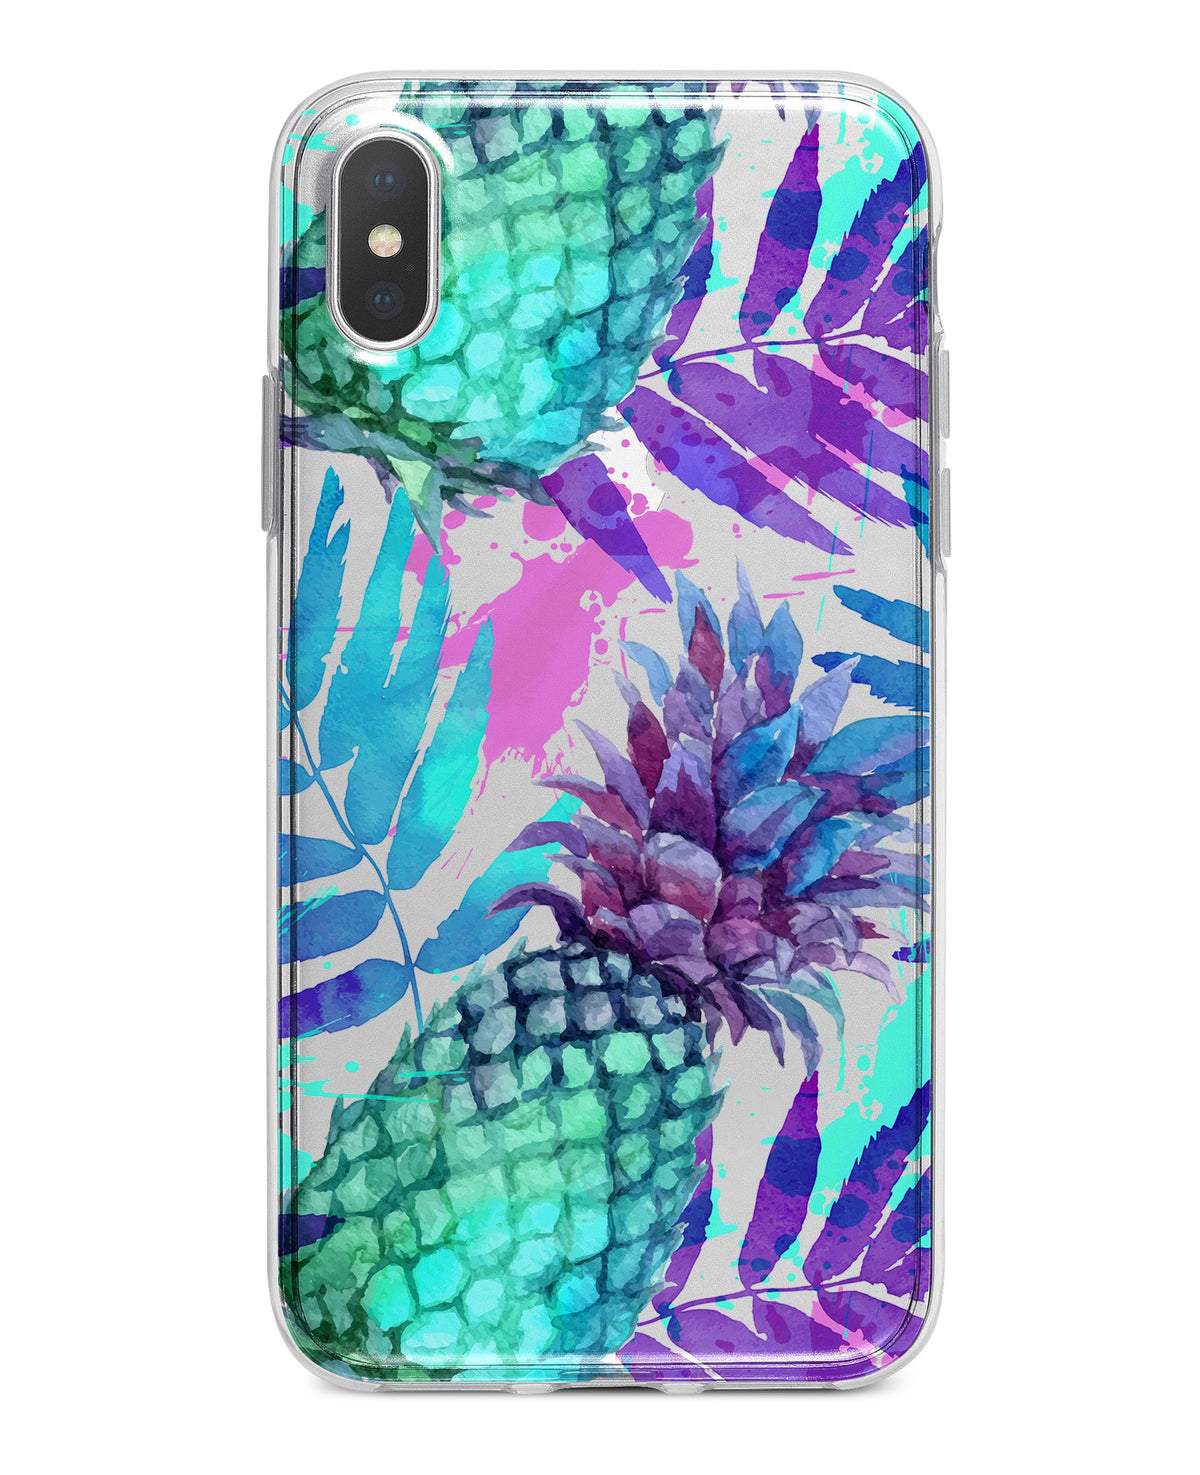 online retailer 8359f 4425f Tropical Summer Pineapple v1 - Crystal Clear Hard Case for the iPhone XS  MAX, XS & More (ALL AVAILABLE)